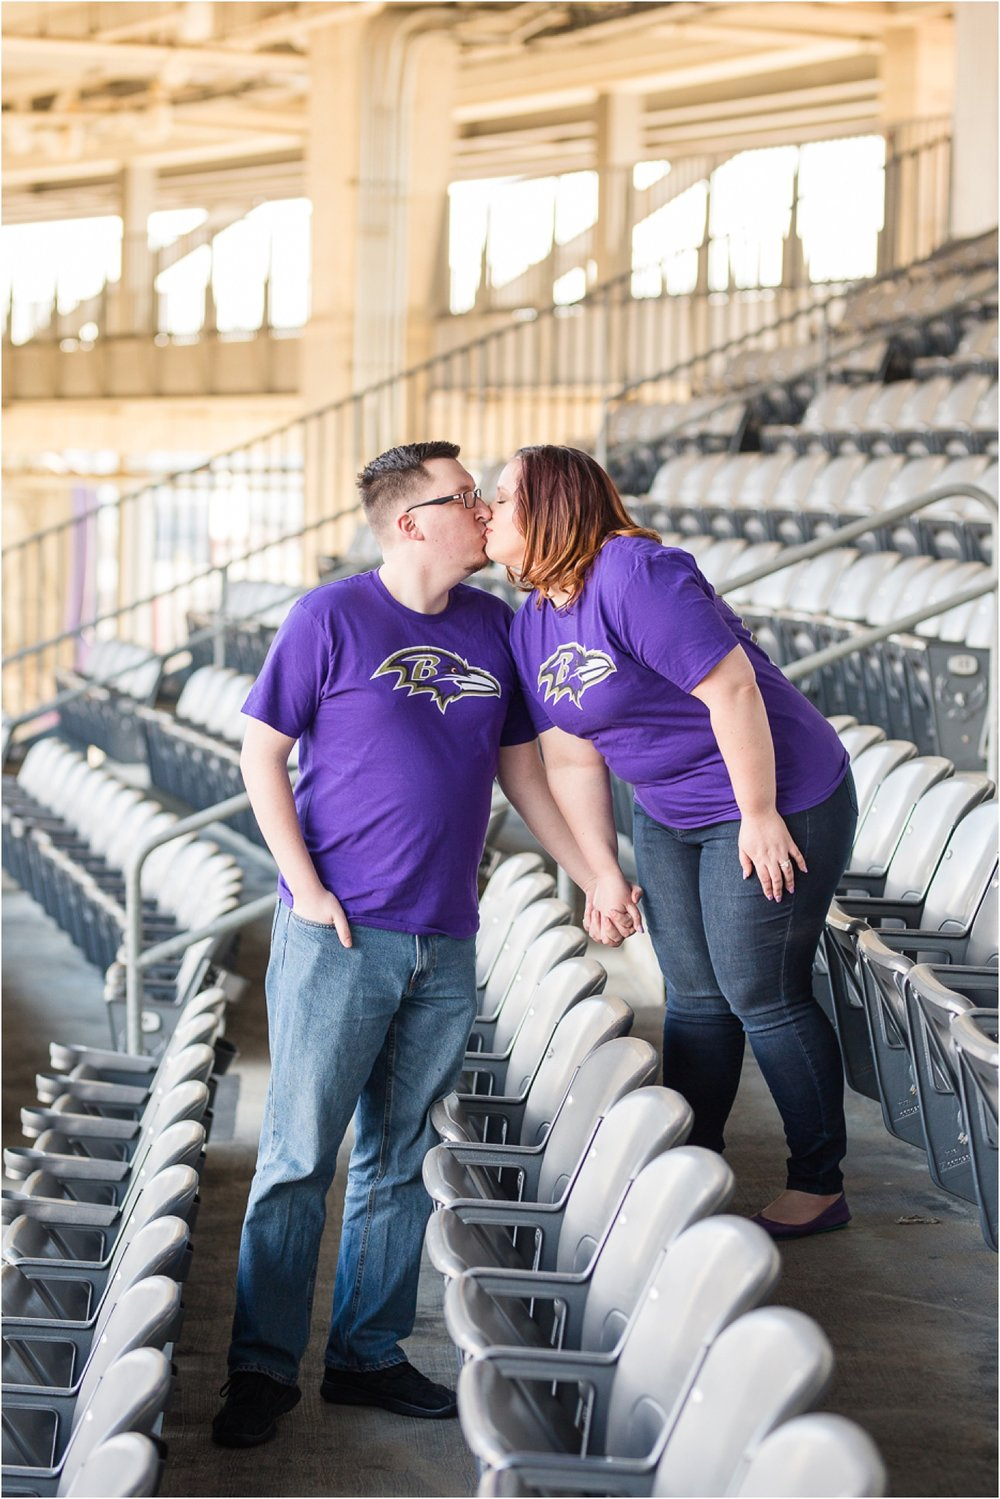 Ravens-Stadium-Engagement-Photos-17.jpg